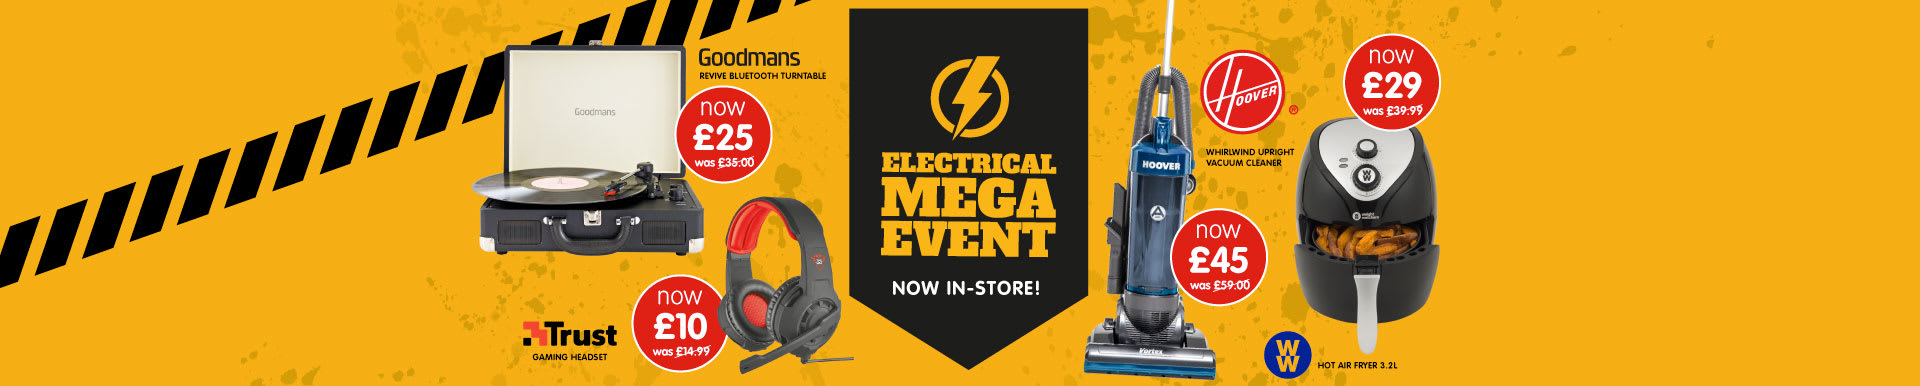 Save in the Electrical Mega Event at B&M.